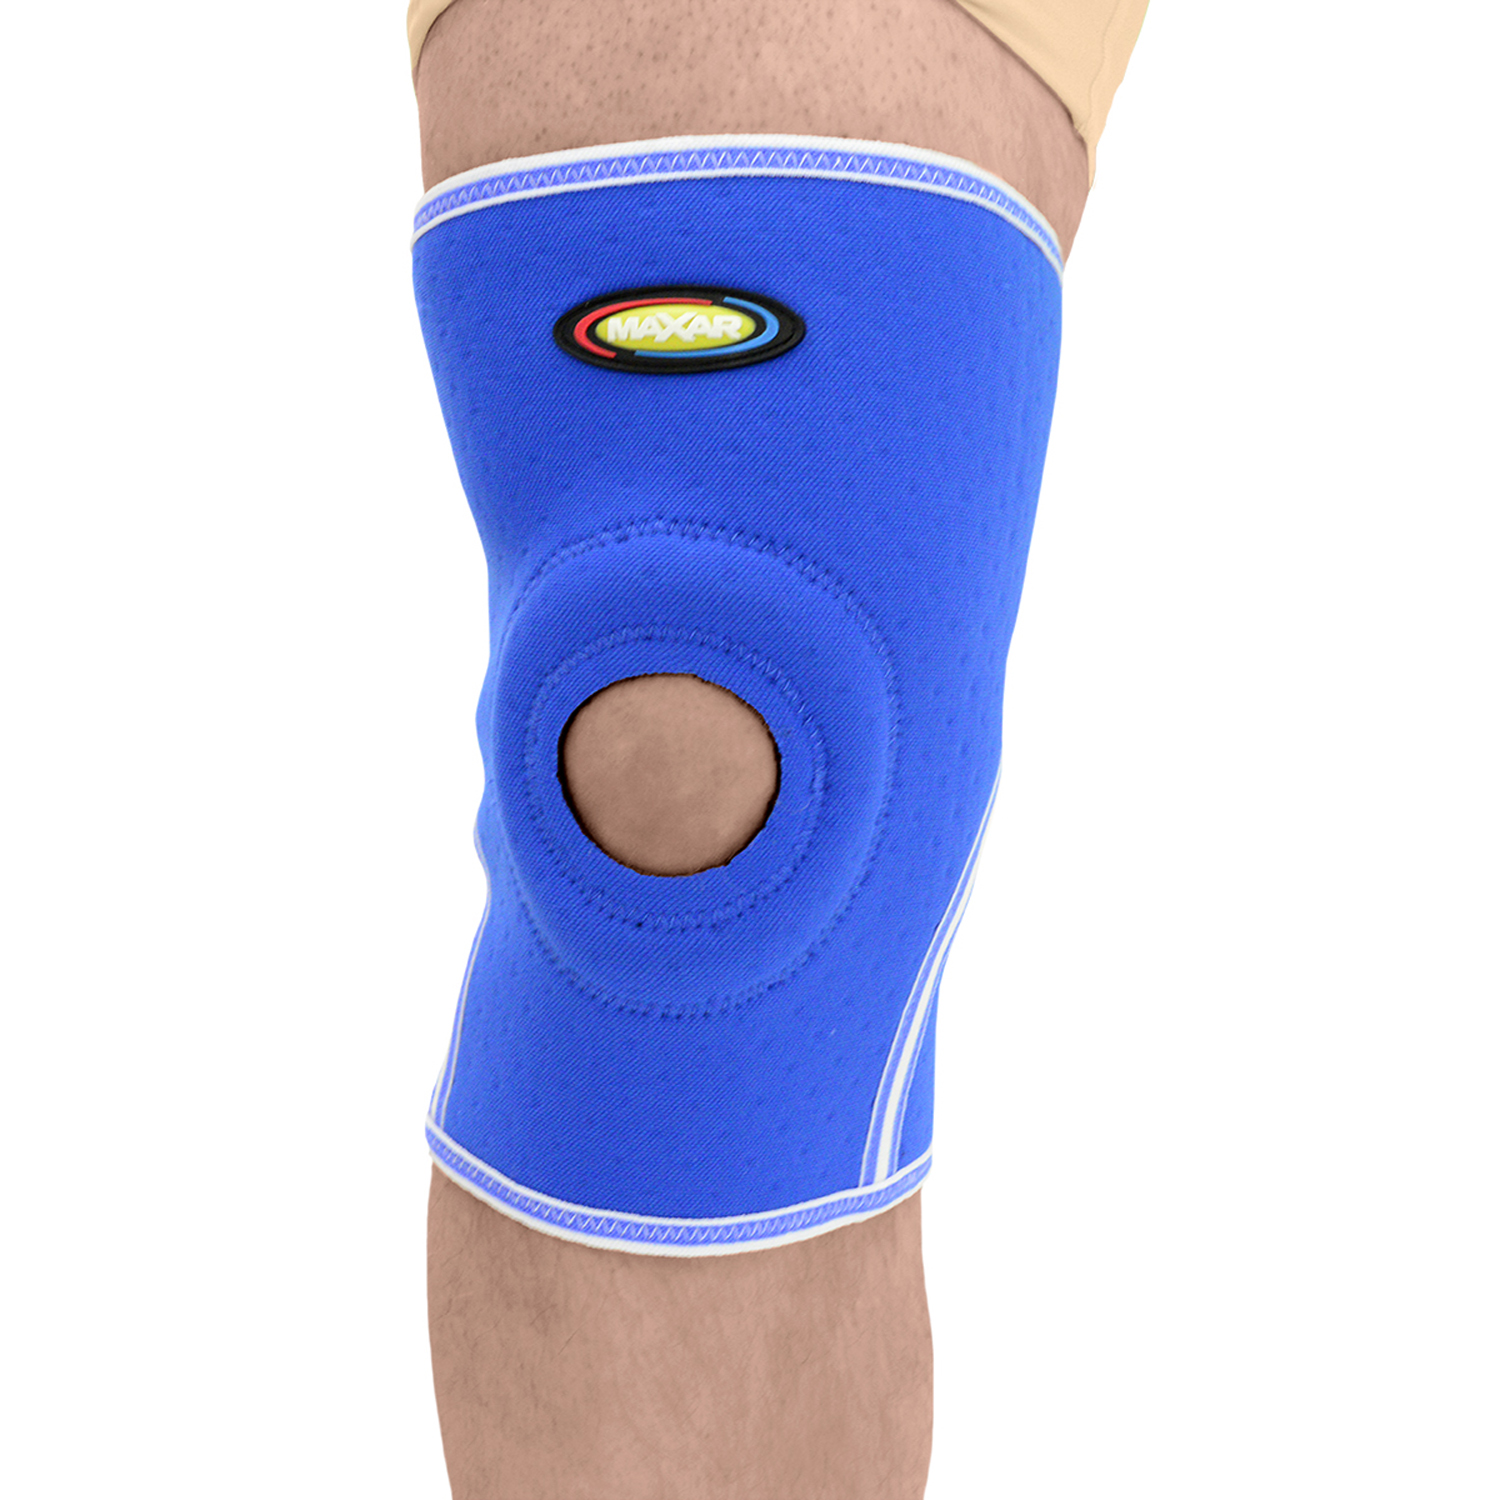 MAXAR  Style NKN-209 Airprene (Breathable Neoprene) Knee Brace